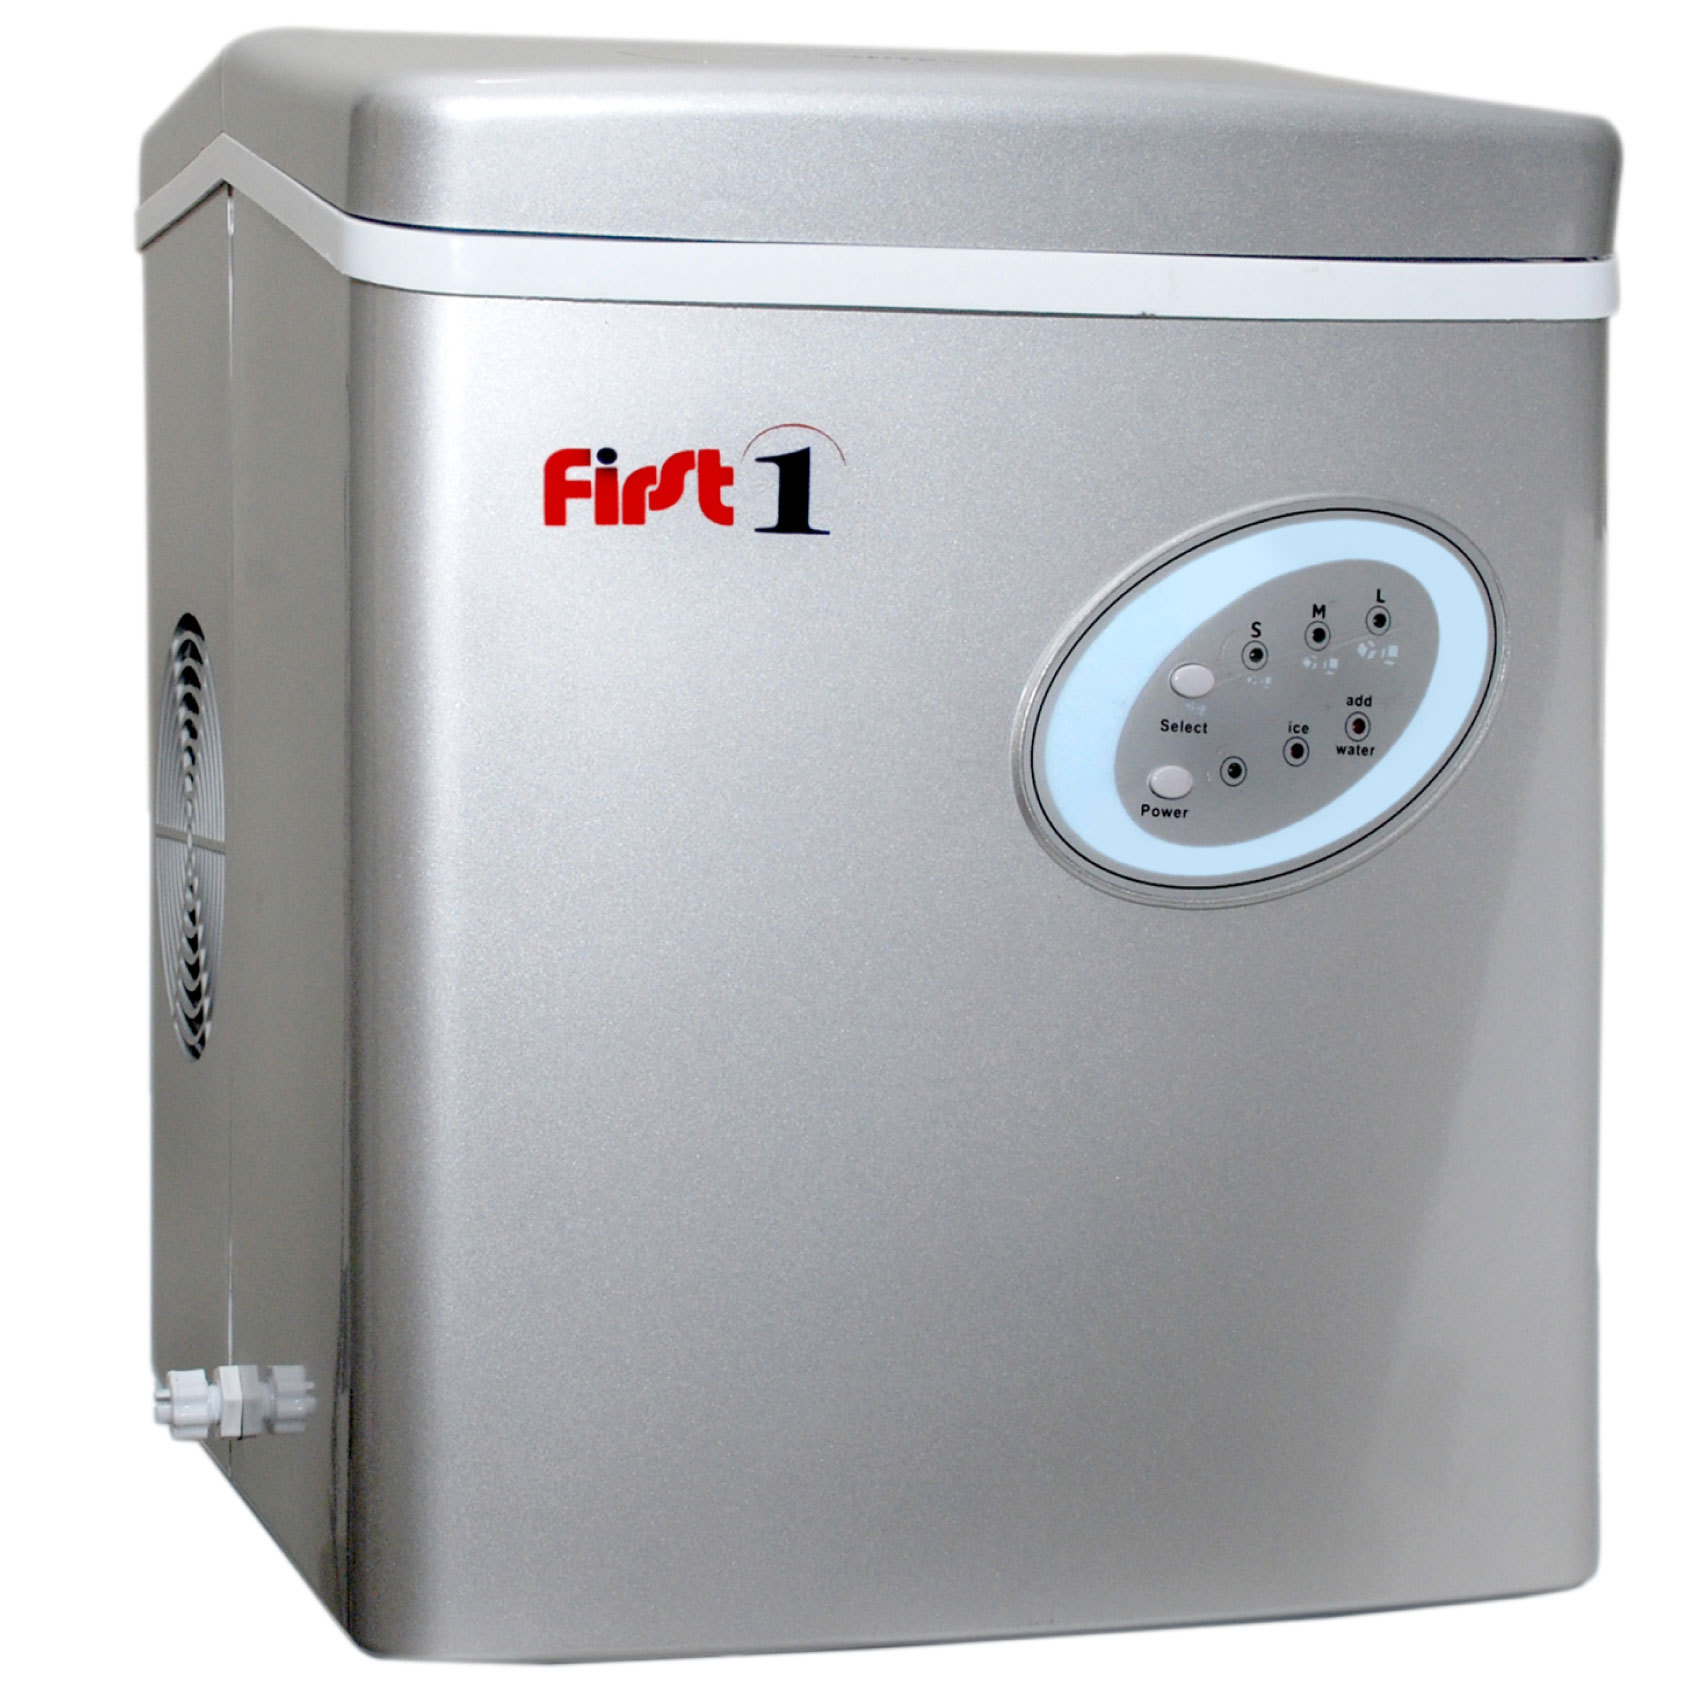 FIRST1 ICE MAKER FIC-714